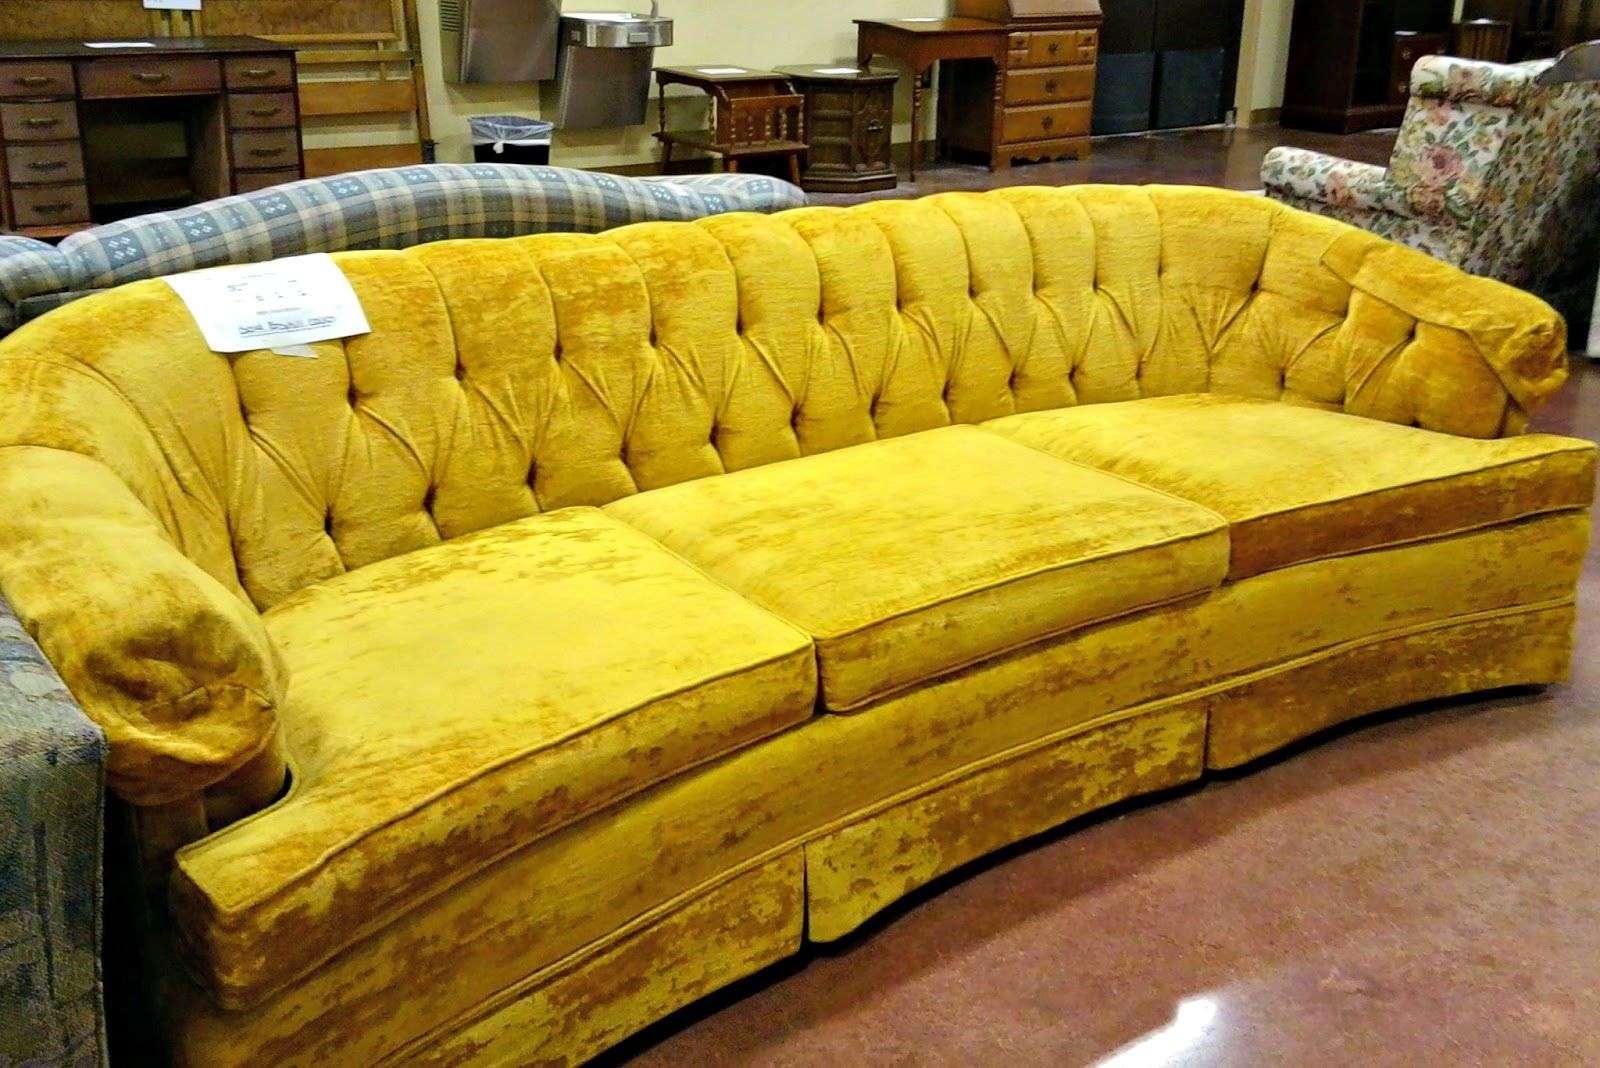 Golden Velvet Sofa Oufit Of The Day S Yellow Couch Velvet Tufted Sofa Yellow Sofa